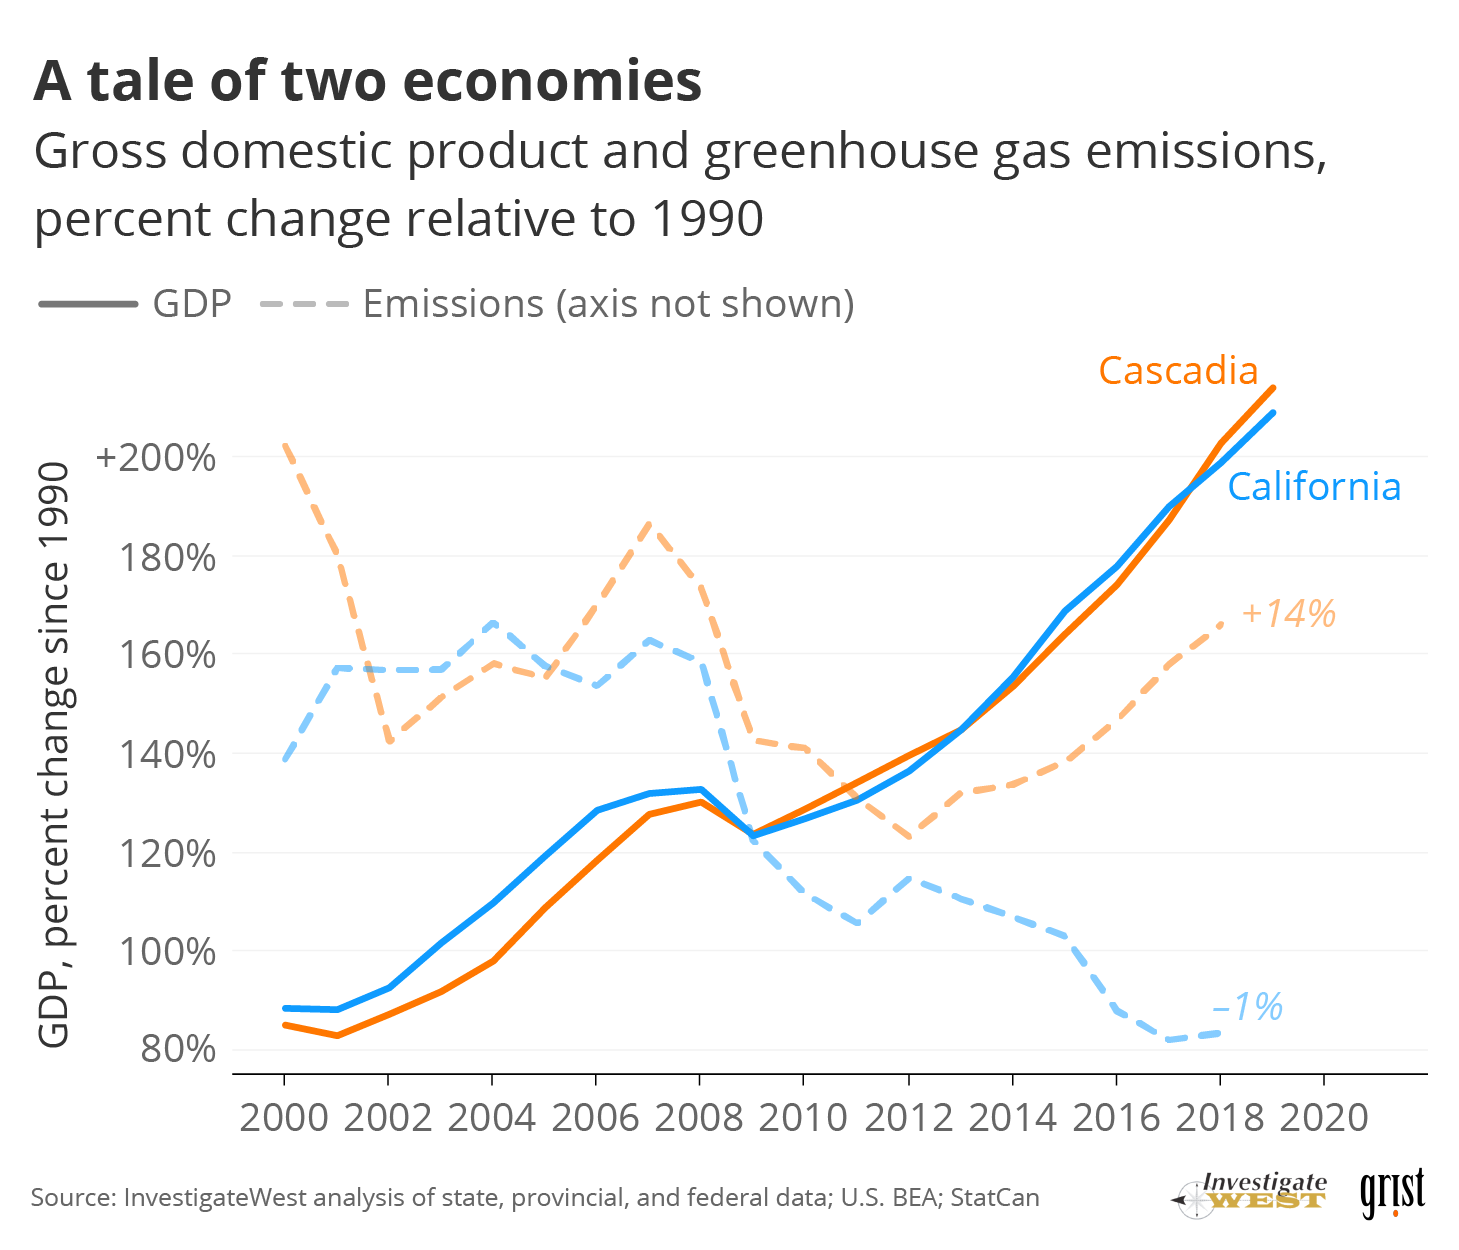 A line chart comparing Cascadia and California's GDP with their greenhouse gas emissions relative to 1990. While California has increased its GDP while cutting emissions, Cascadia has seen both rise.